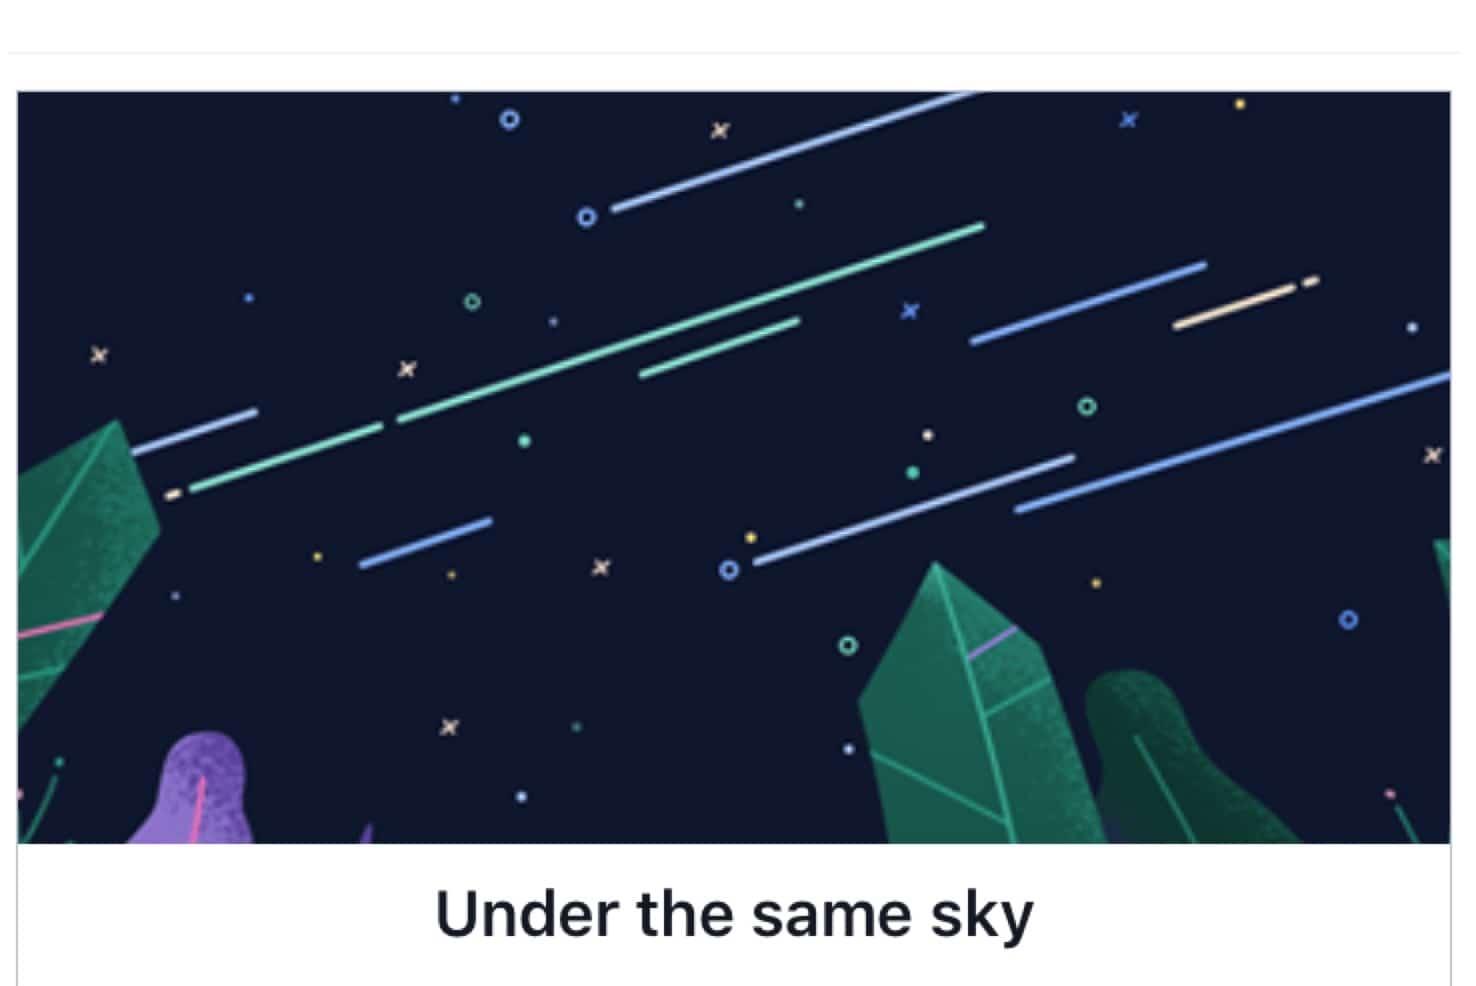 #Tonight's #Geminids #meteor  #shower #will #be #visible #from #every #country #on #Earth. #If #get #to #see #this #amazing #light #show,#know #that #you'll #be #sharing #it #with #millions #of #fellow #stargazers.  #SalmaMakhdoom